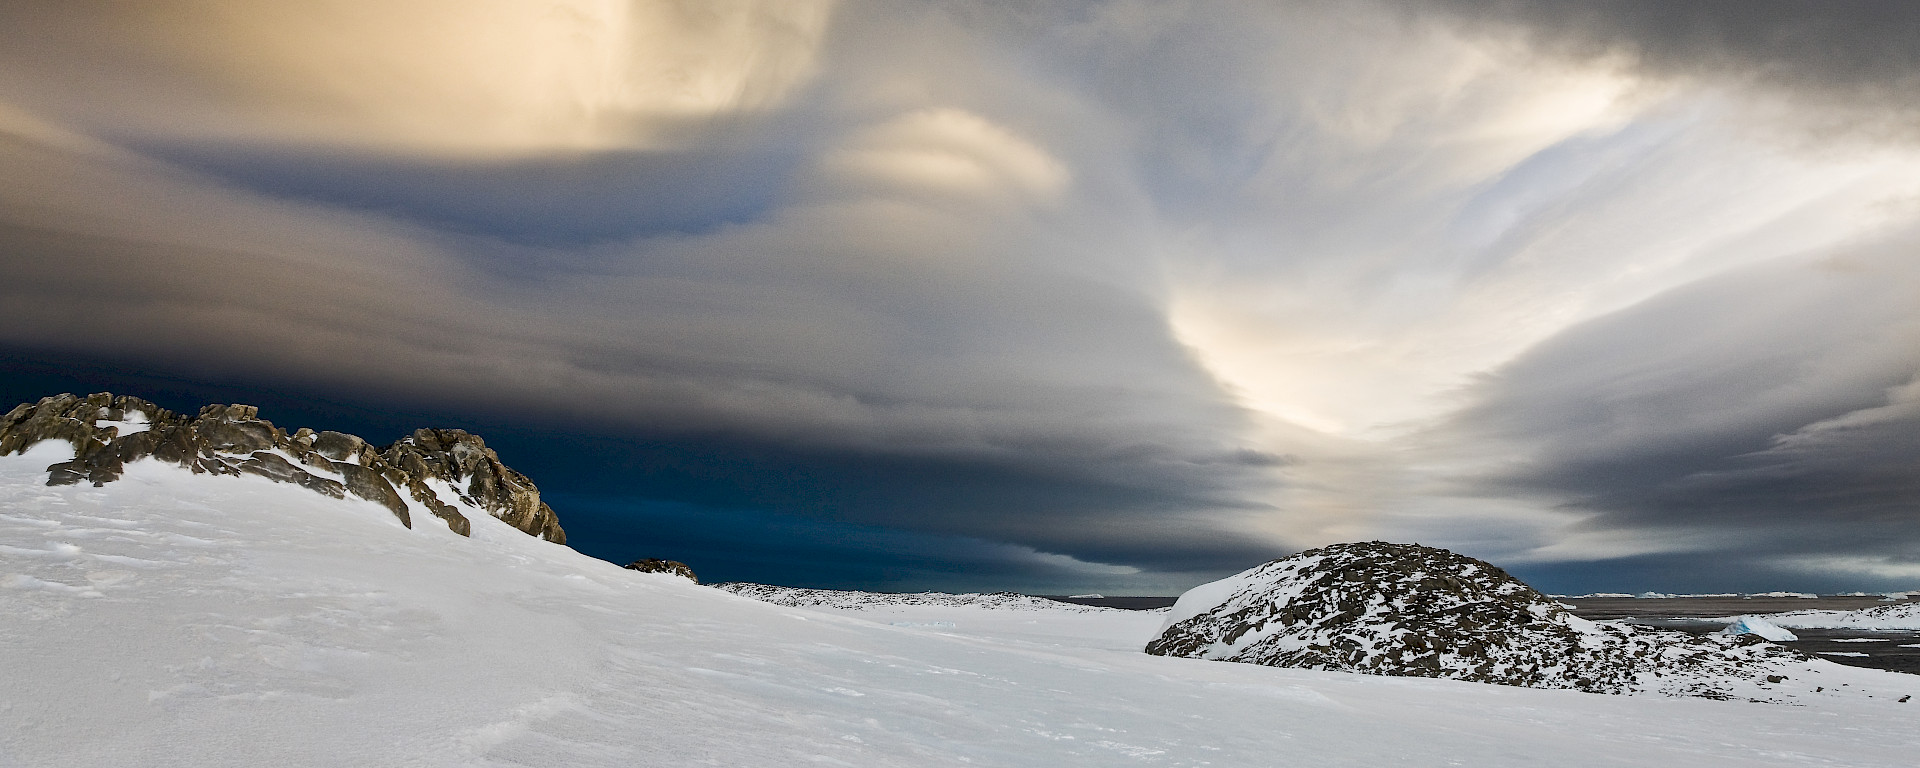 Clouds above an icy landscape.